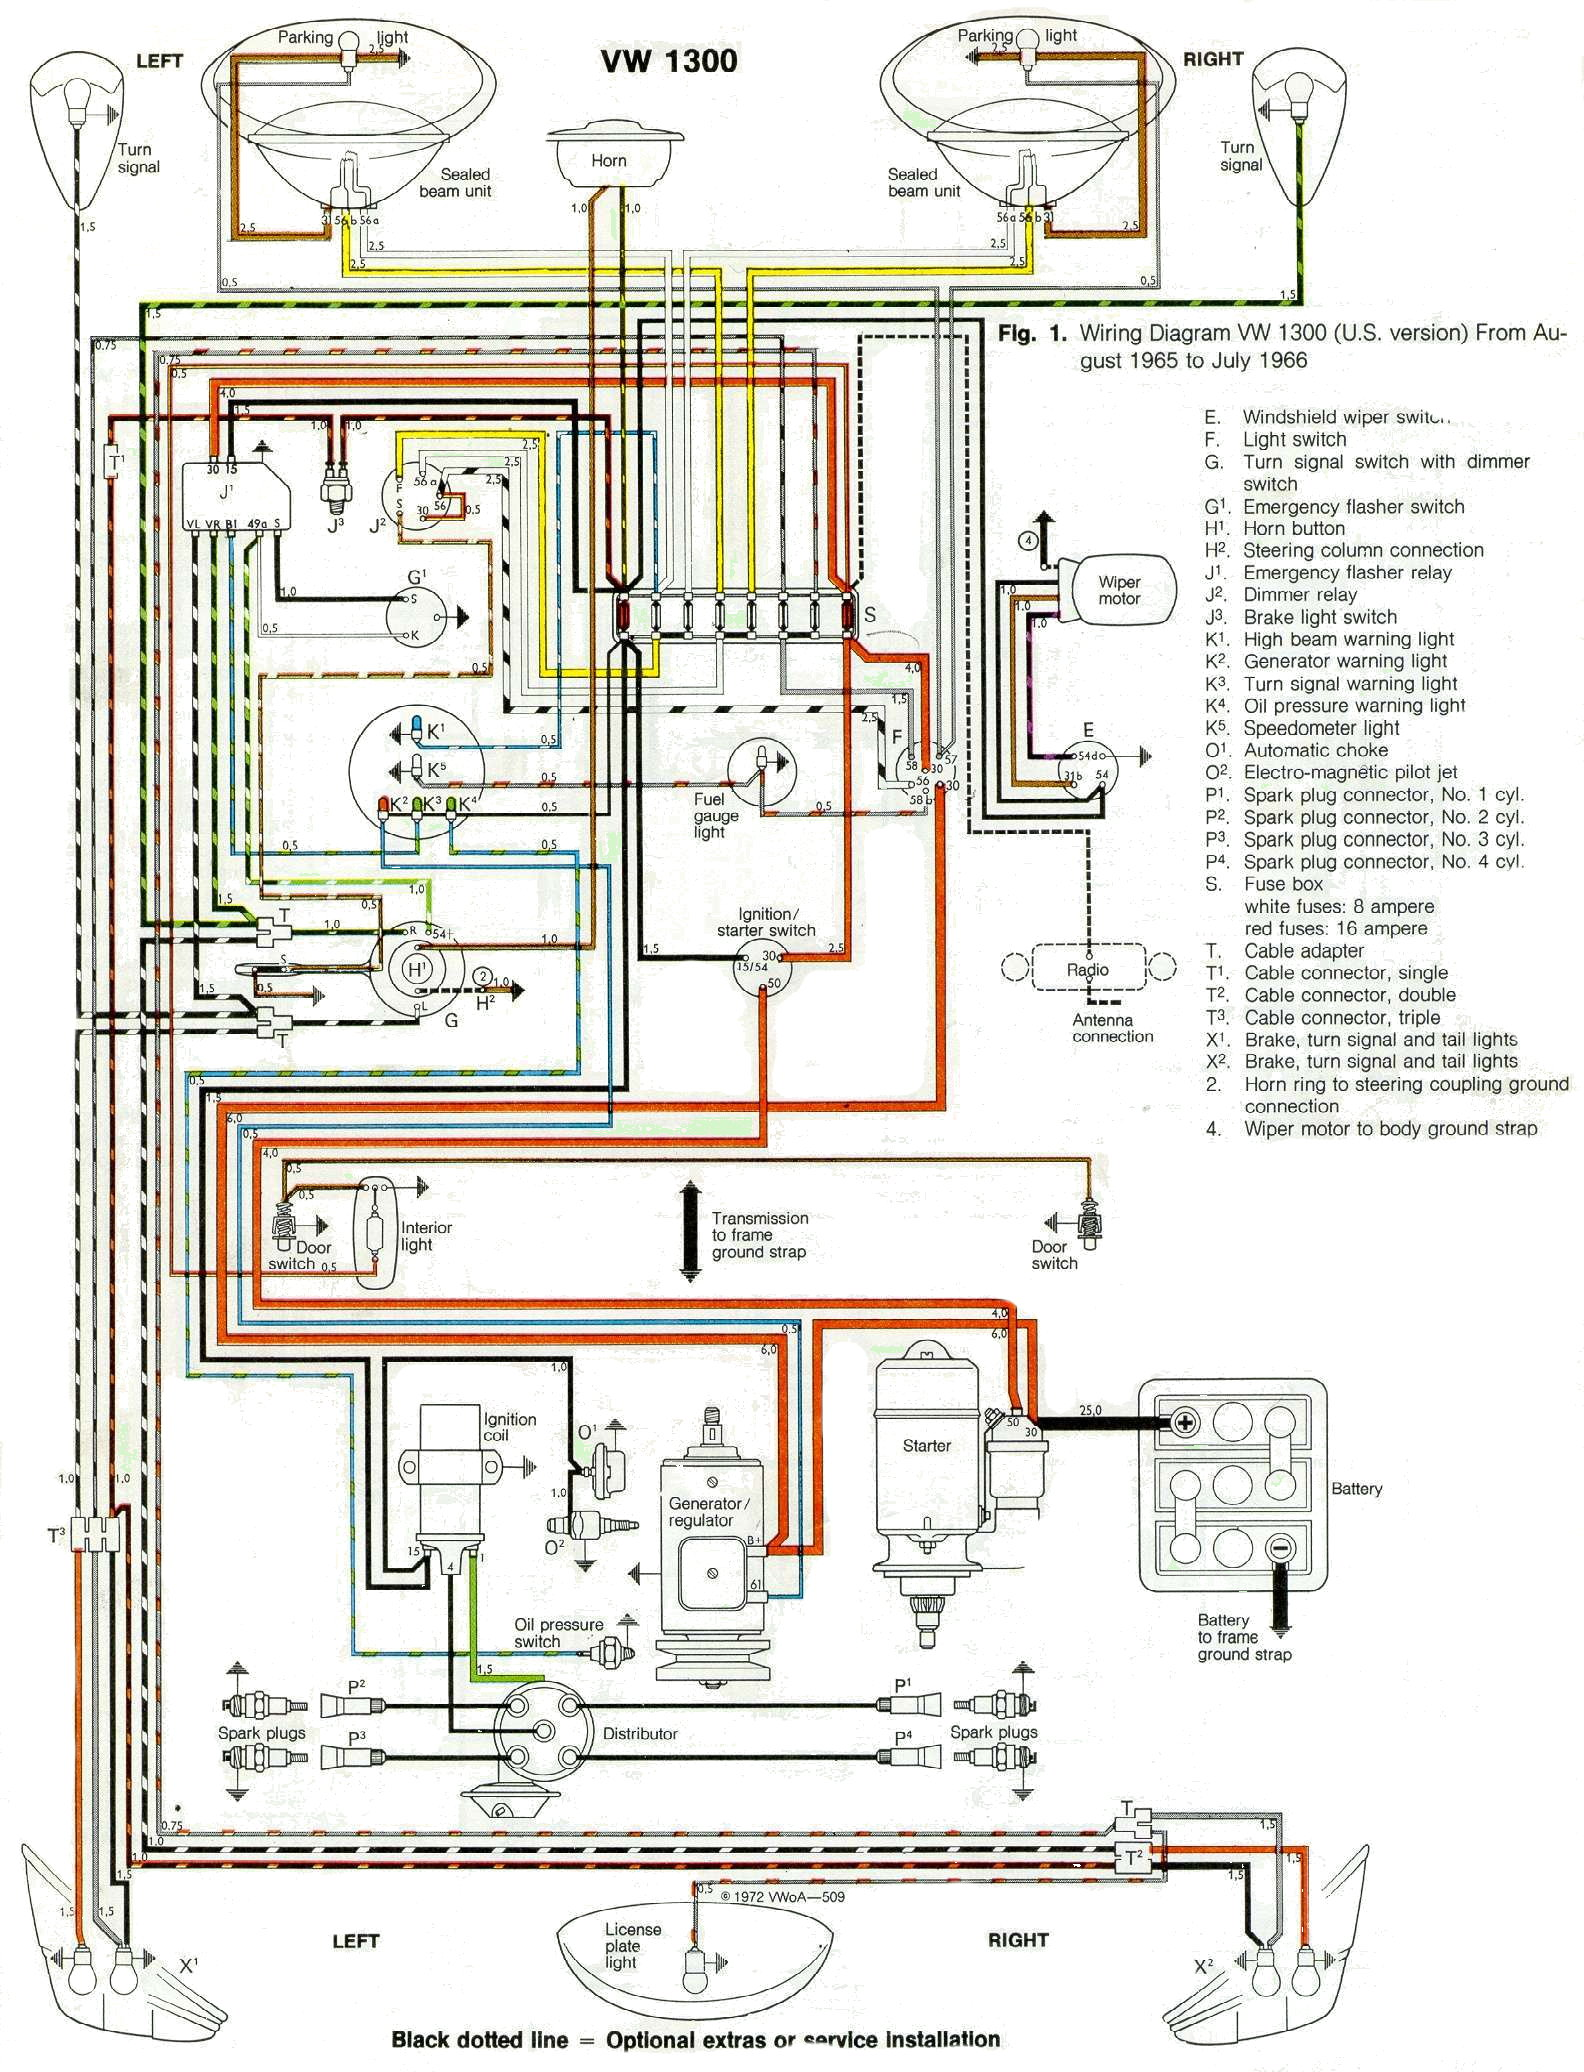 1966 wiring diagram rh 1966vwbeetle com vw beetle wiring diagram 2000 vw beetle wiring harness